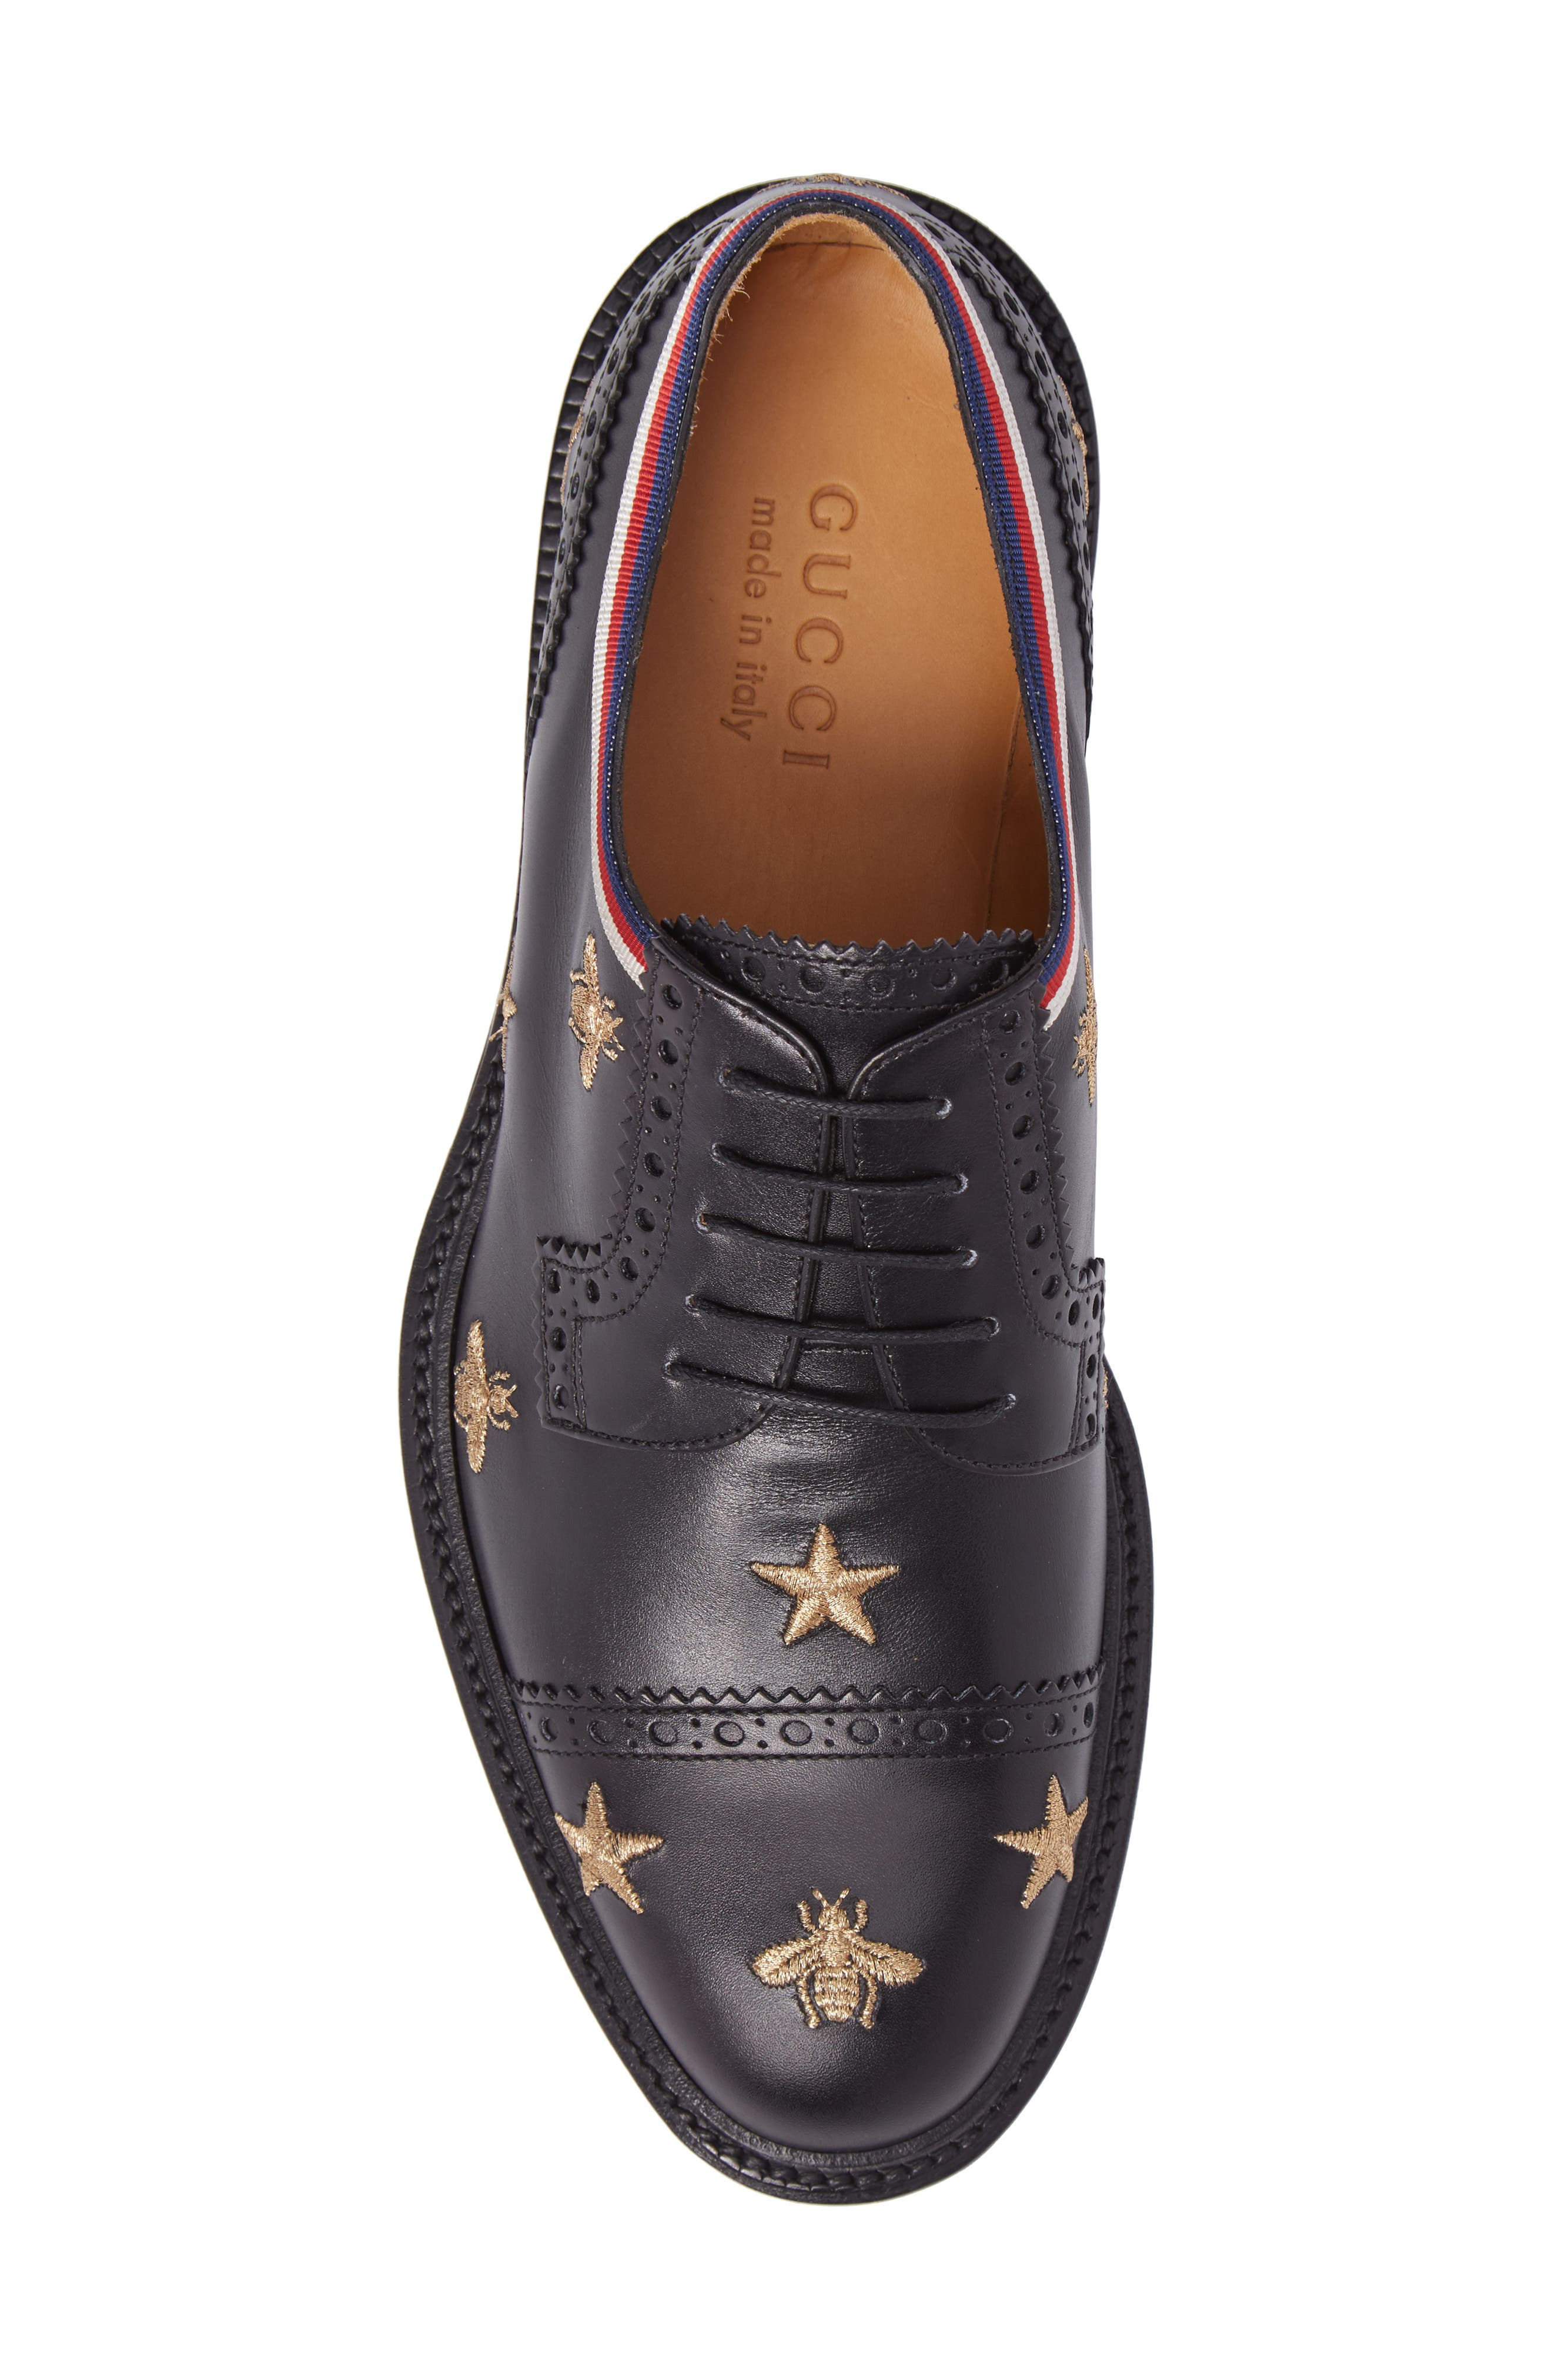 Embroidered Leather Brogue Shoe,                             Alternate thumbnail 5, color,                             009